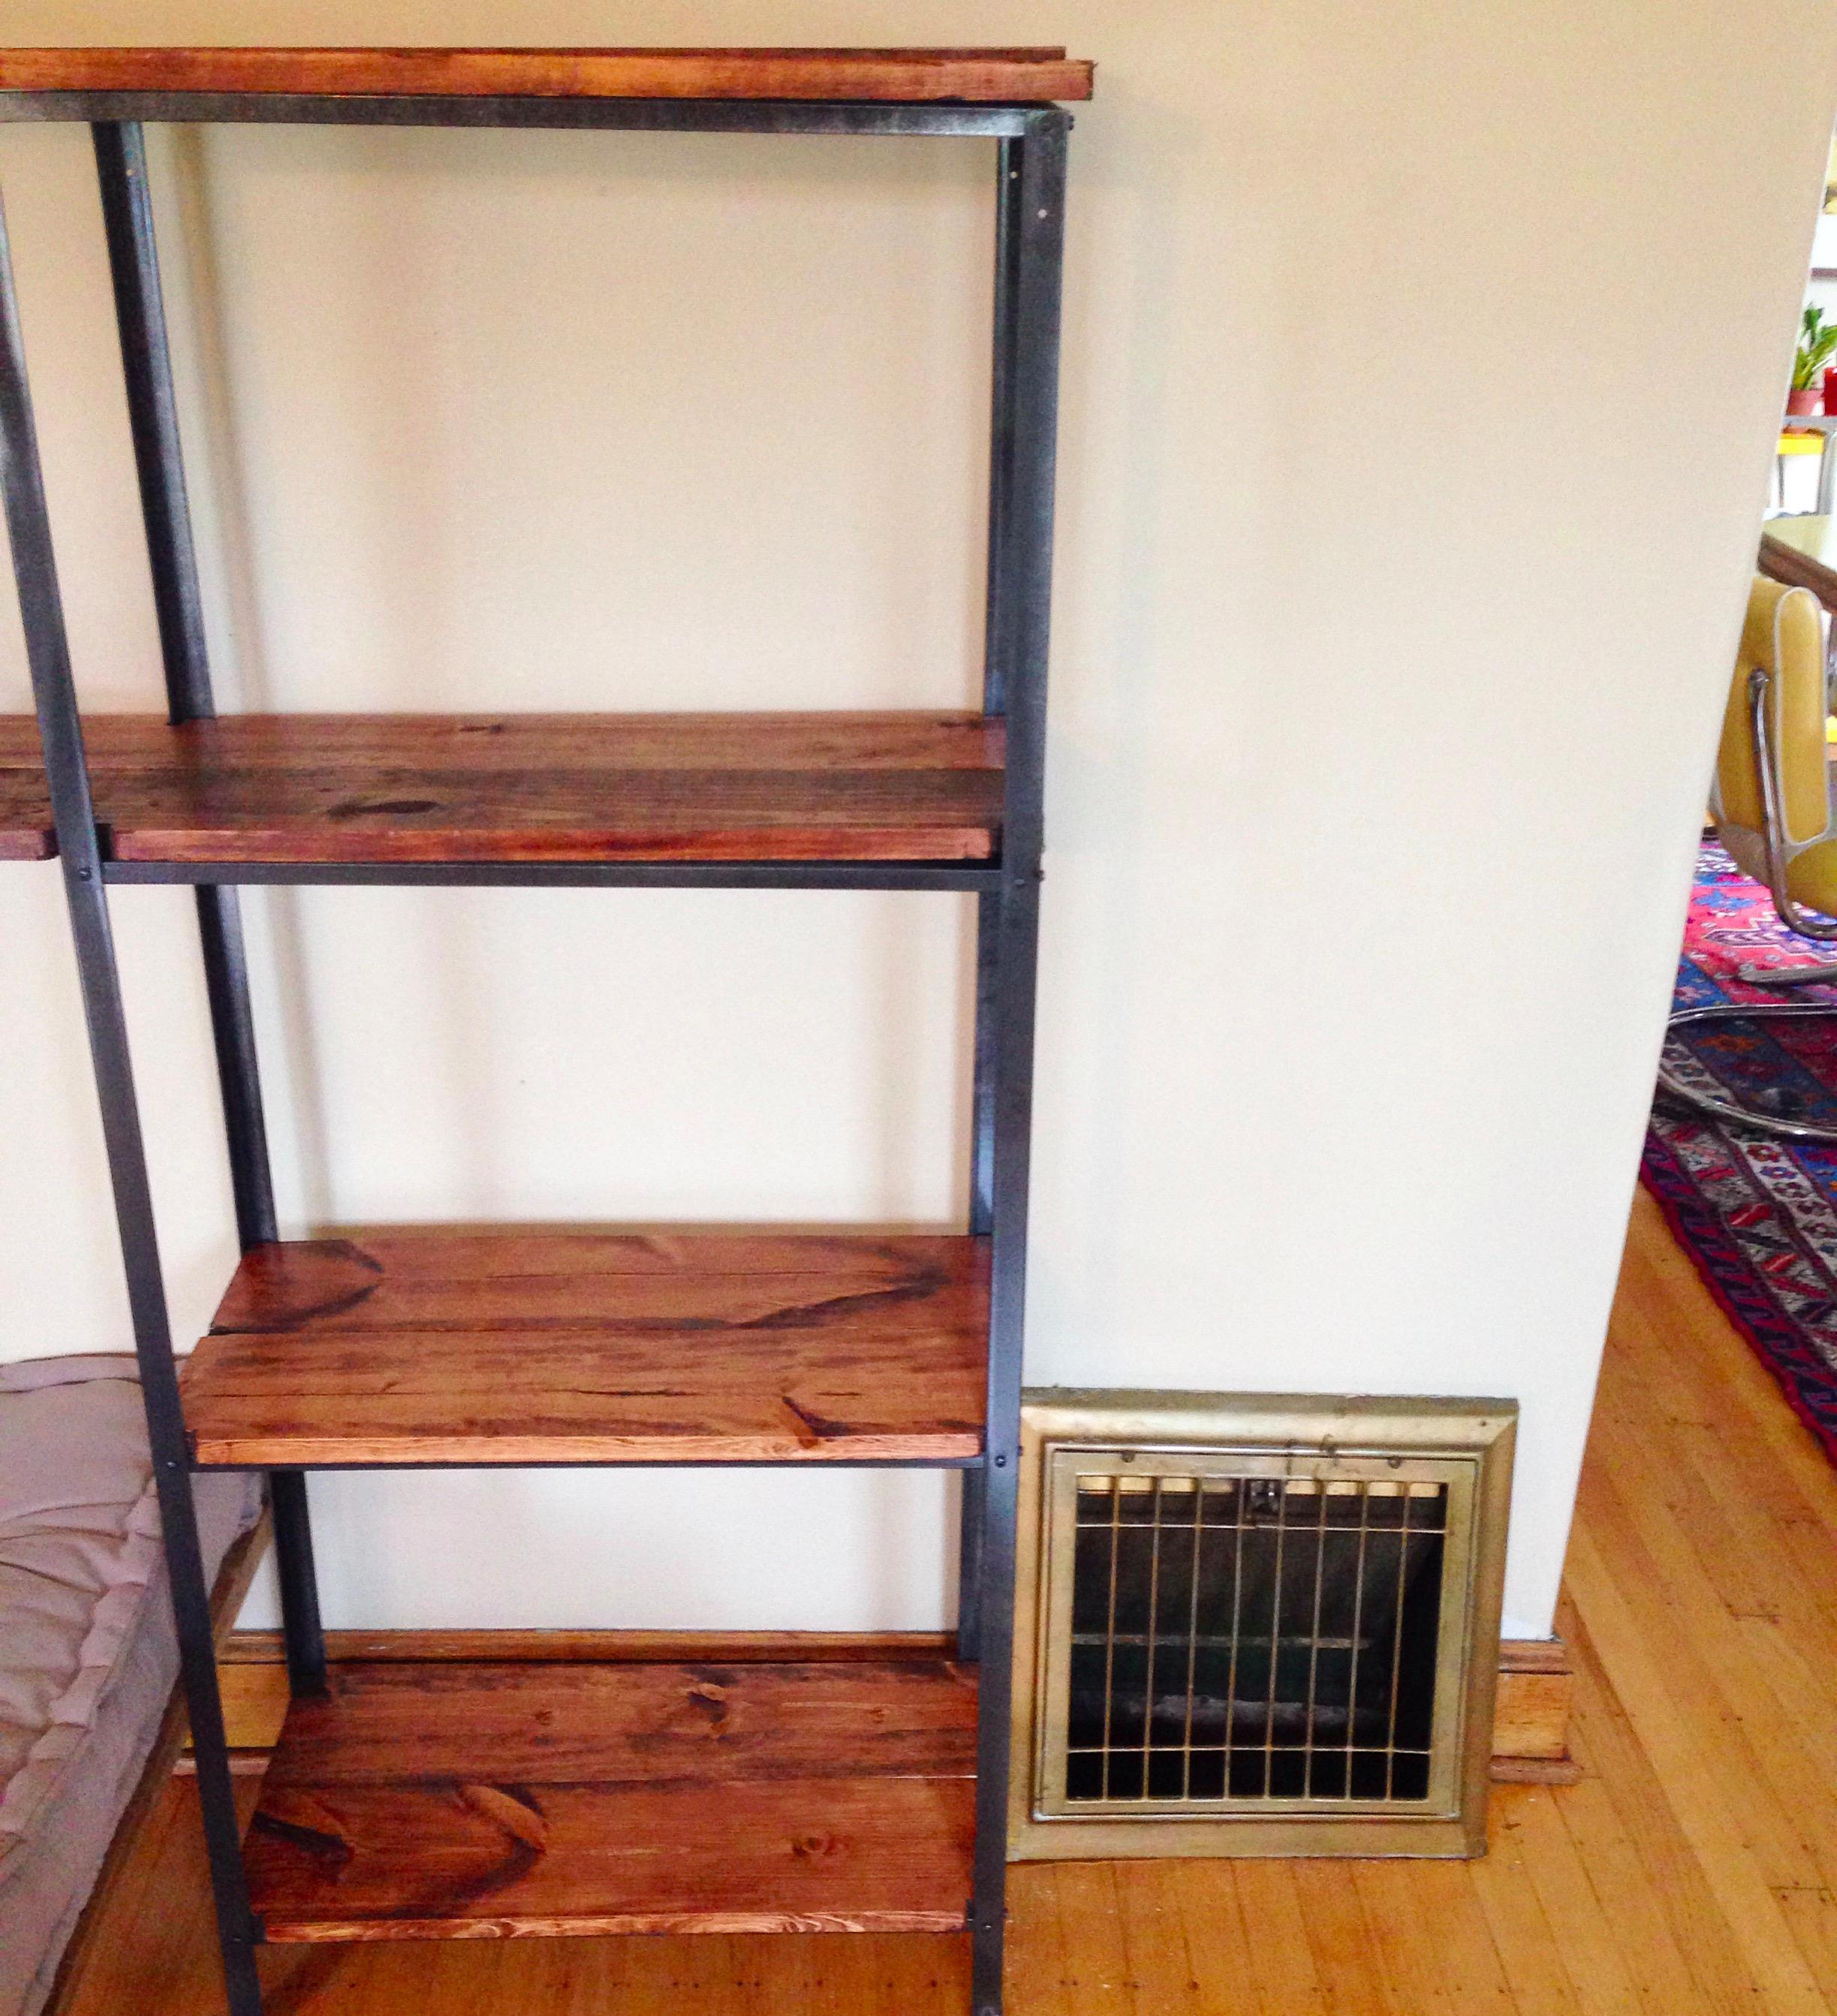 Ikea Hyllis Shelves – Misadventures In Upcycling And Repurposing